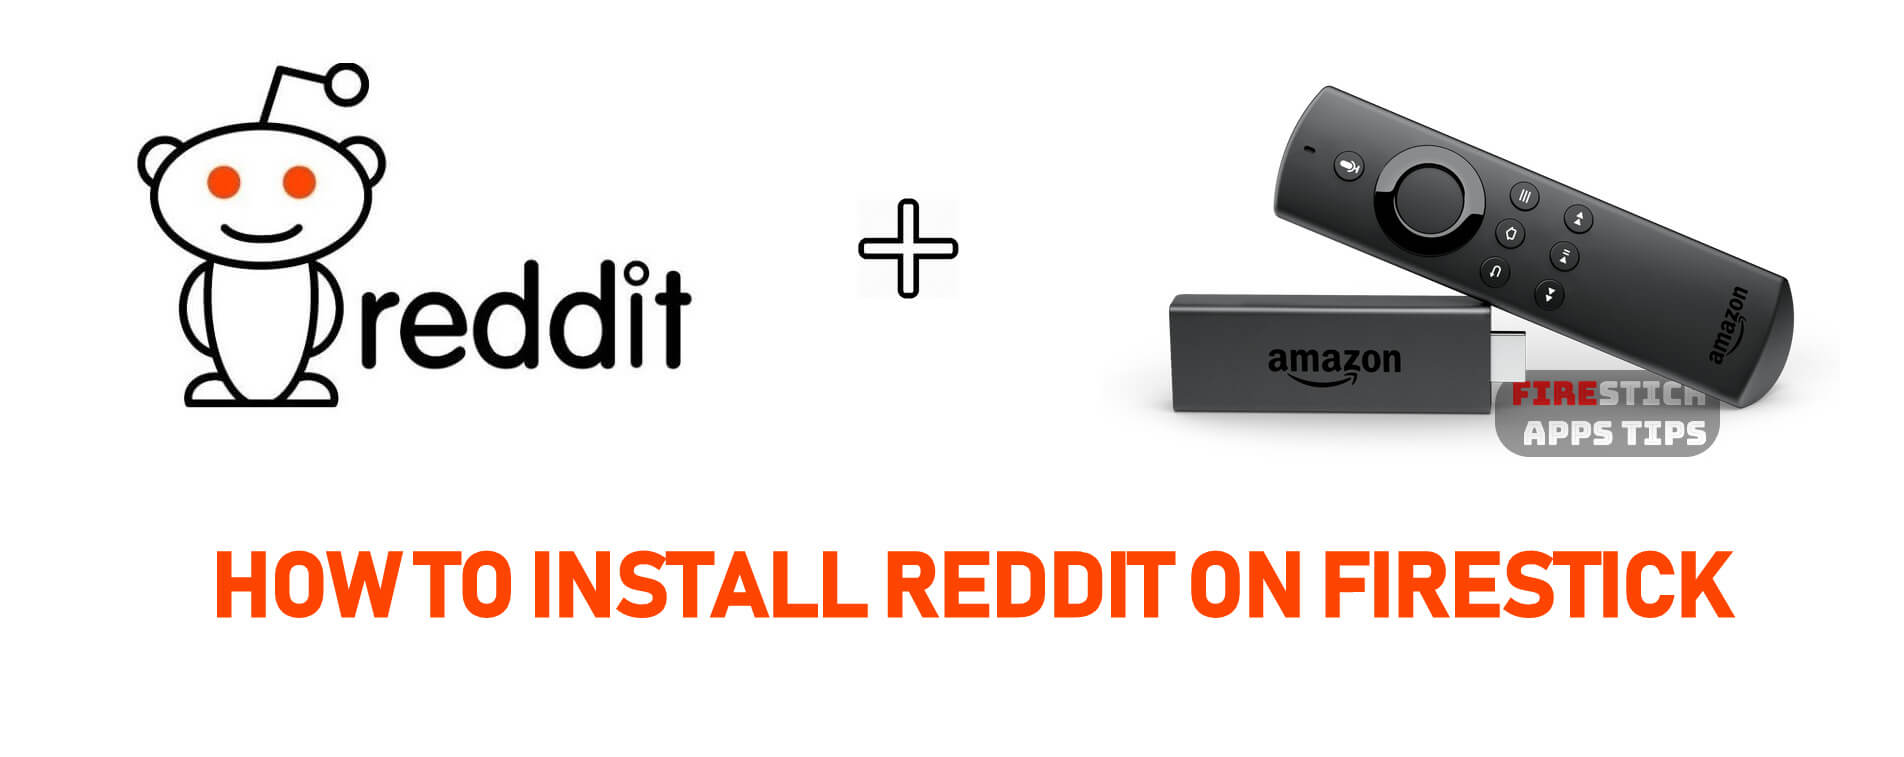 reddit on firestick